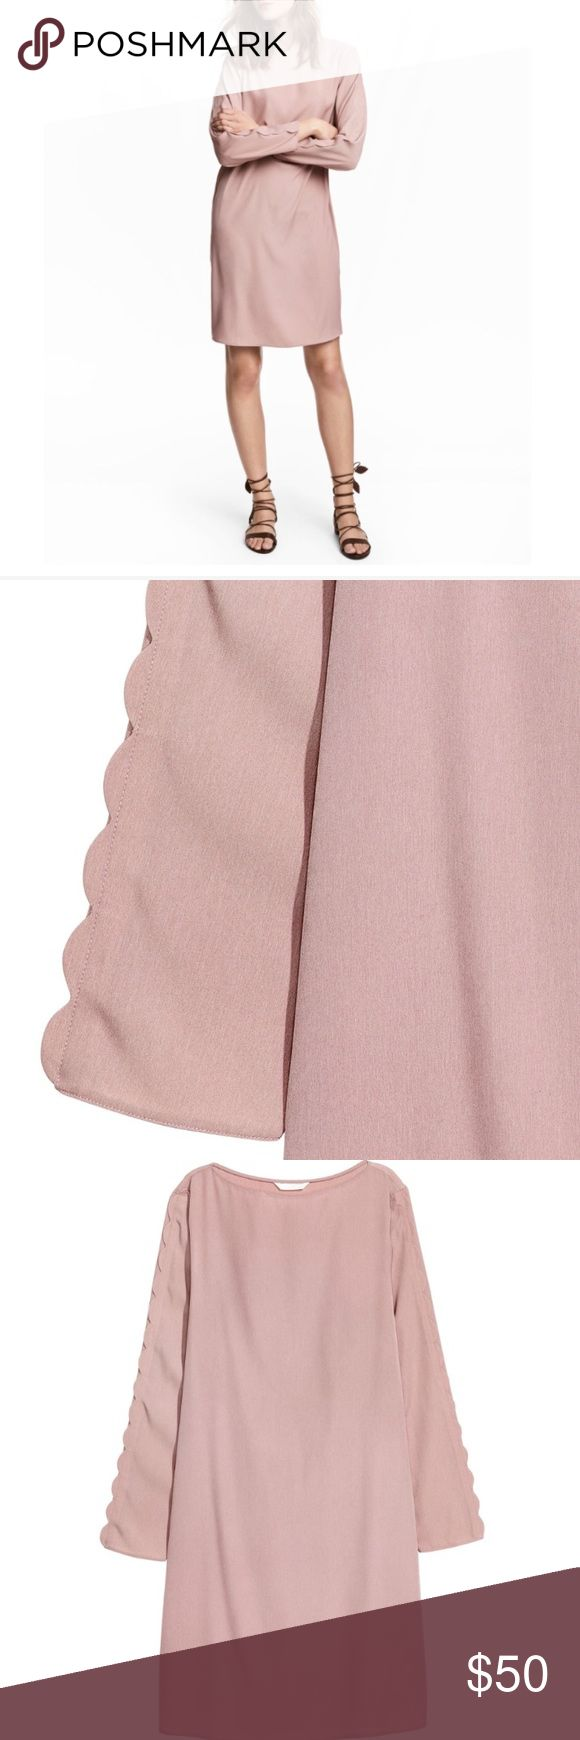 Pink Dress With Scalloped Trim Sleeves Beautiful dress never worn with tagsStraight-cut, knee-length dress in woven fabric. Long sleeves with decorative scalloped trim from shoulder to cuff. H&M Dresses Midi